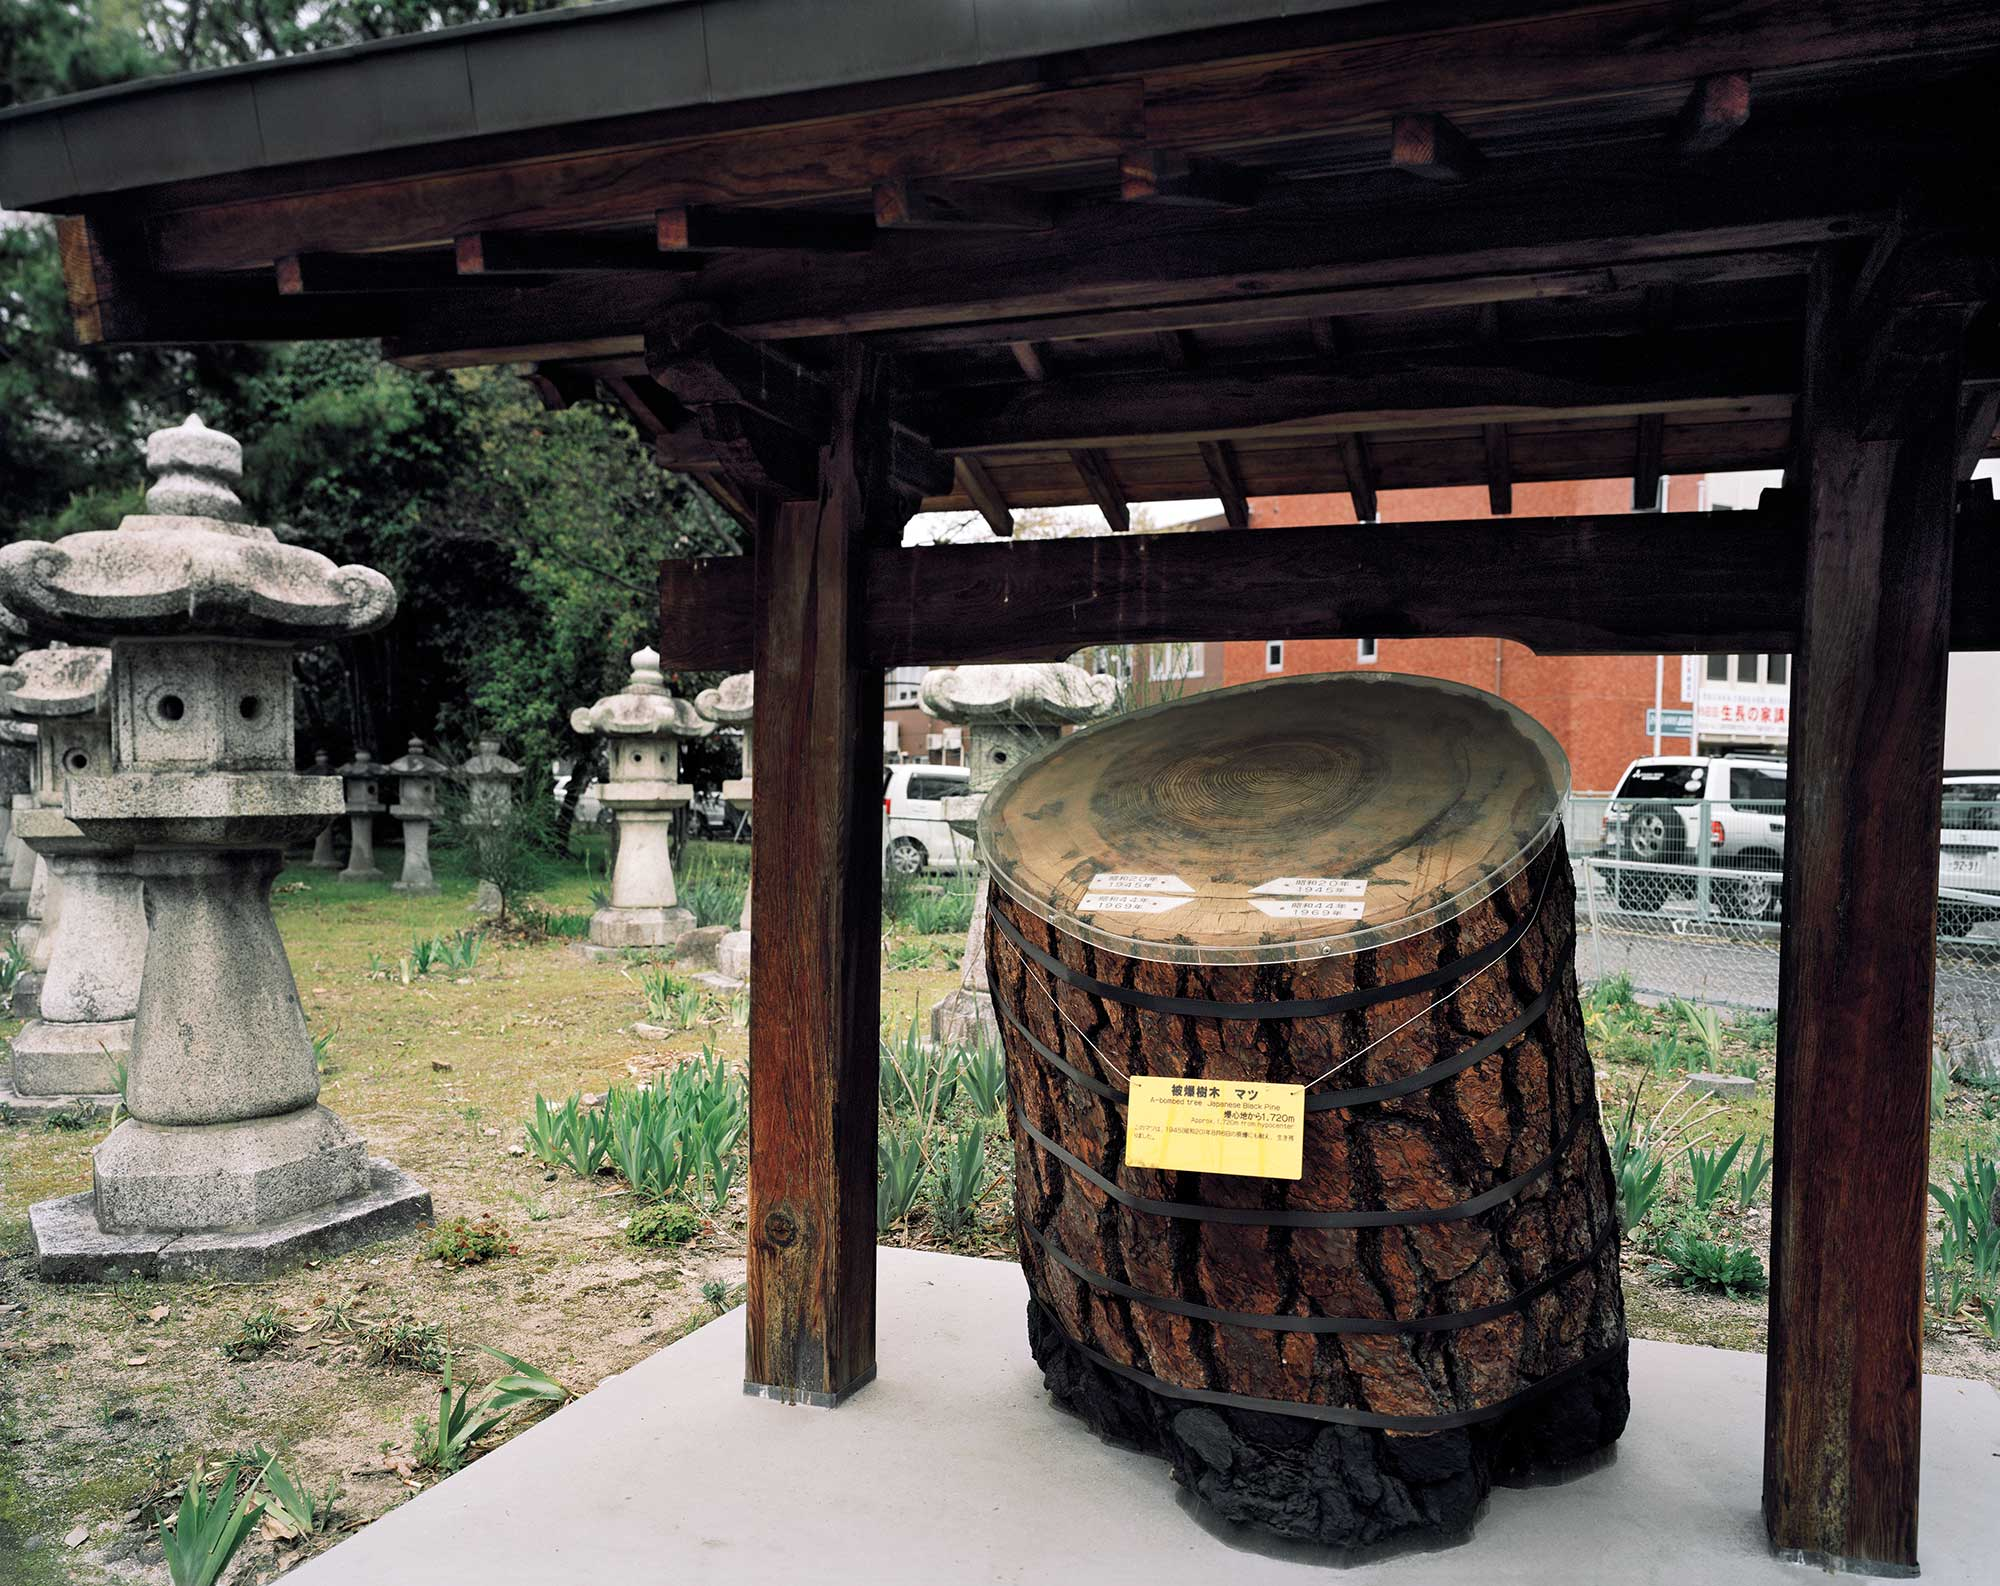 A-bombed Japanese Pine Tree, Nigitsu Shrine, Hiroshima, 1720 meters from the hypocenter, 2013, Chromogenic print, 30 x 40 inch.